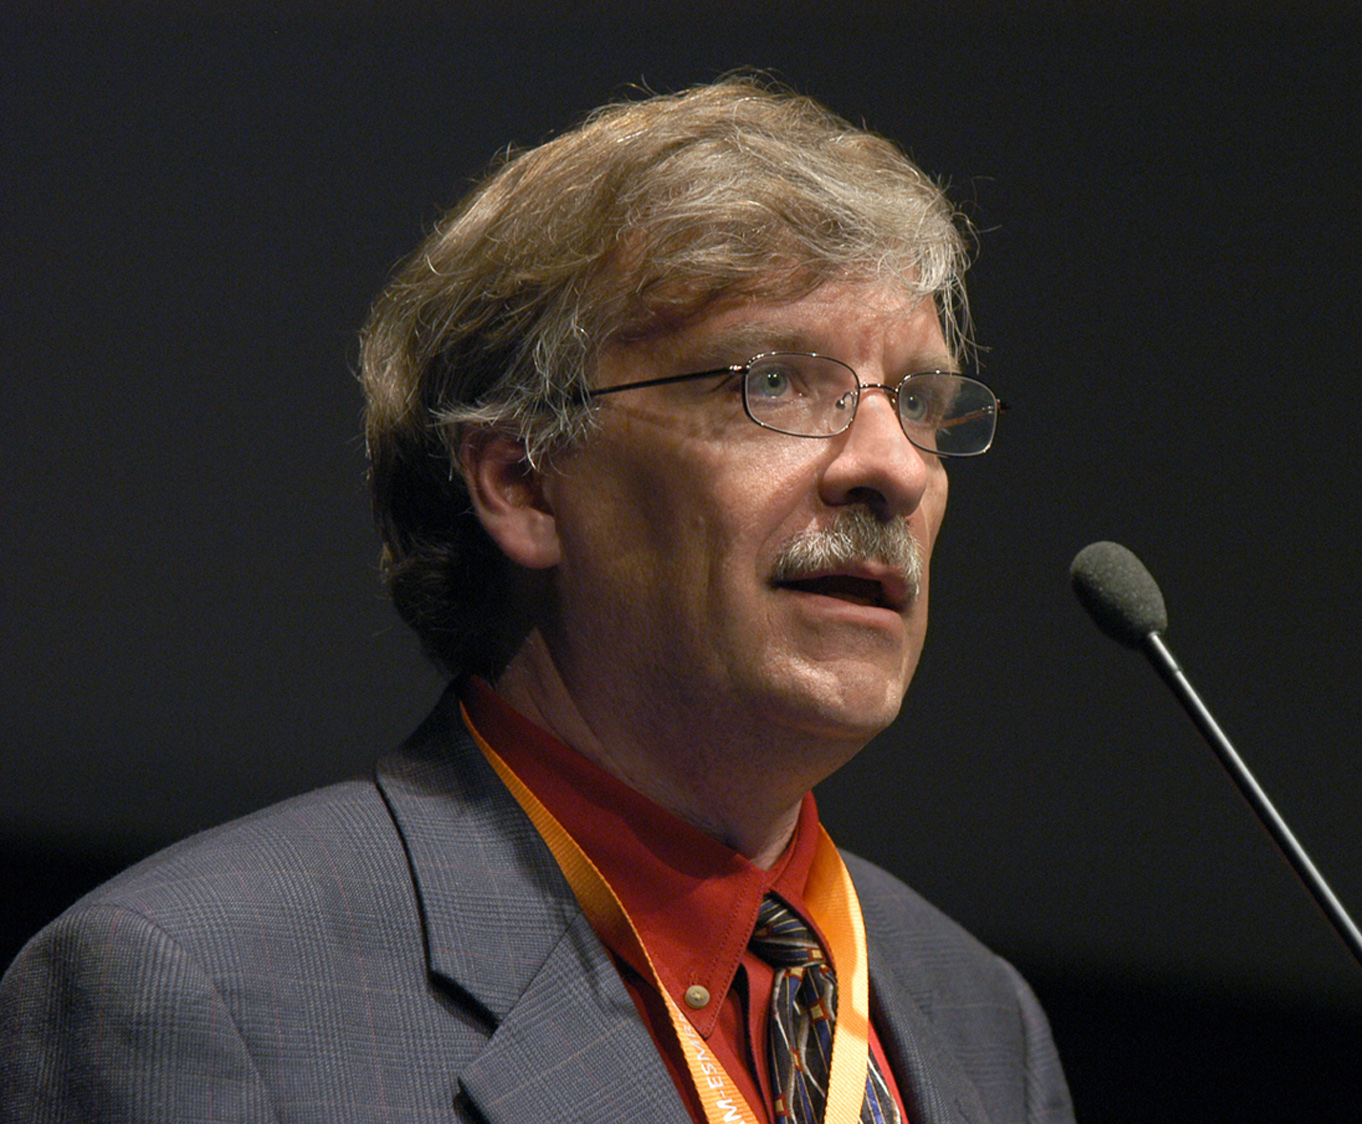 Cofounder Shawn Cowper, MD, addresses the International Society of Magnetic Resonance in Medicine in Berlin in 2007.